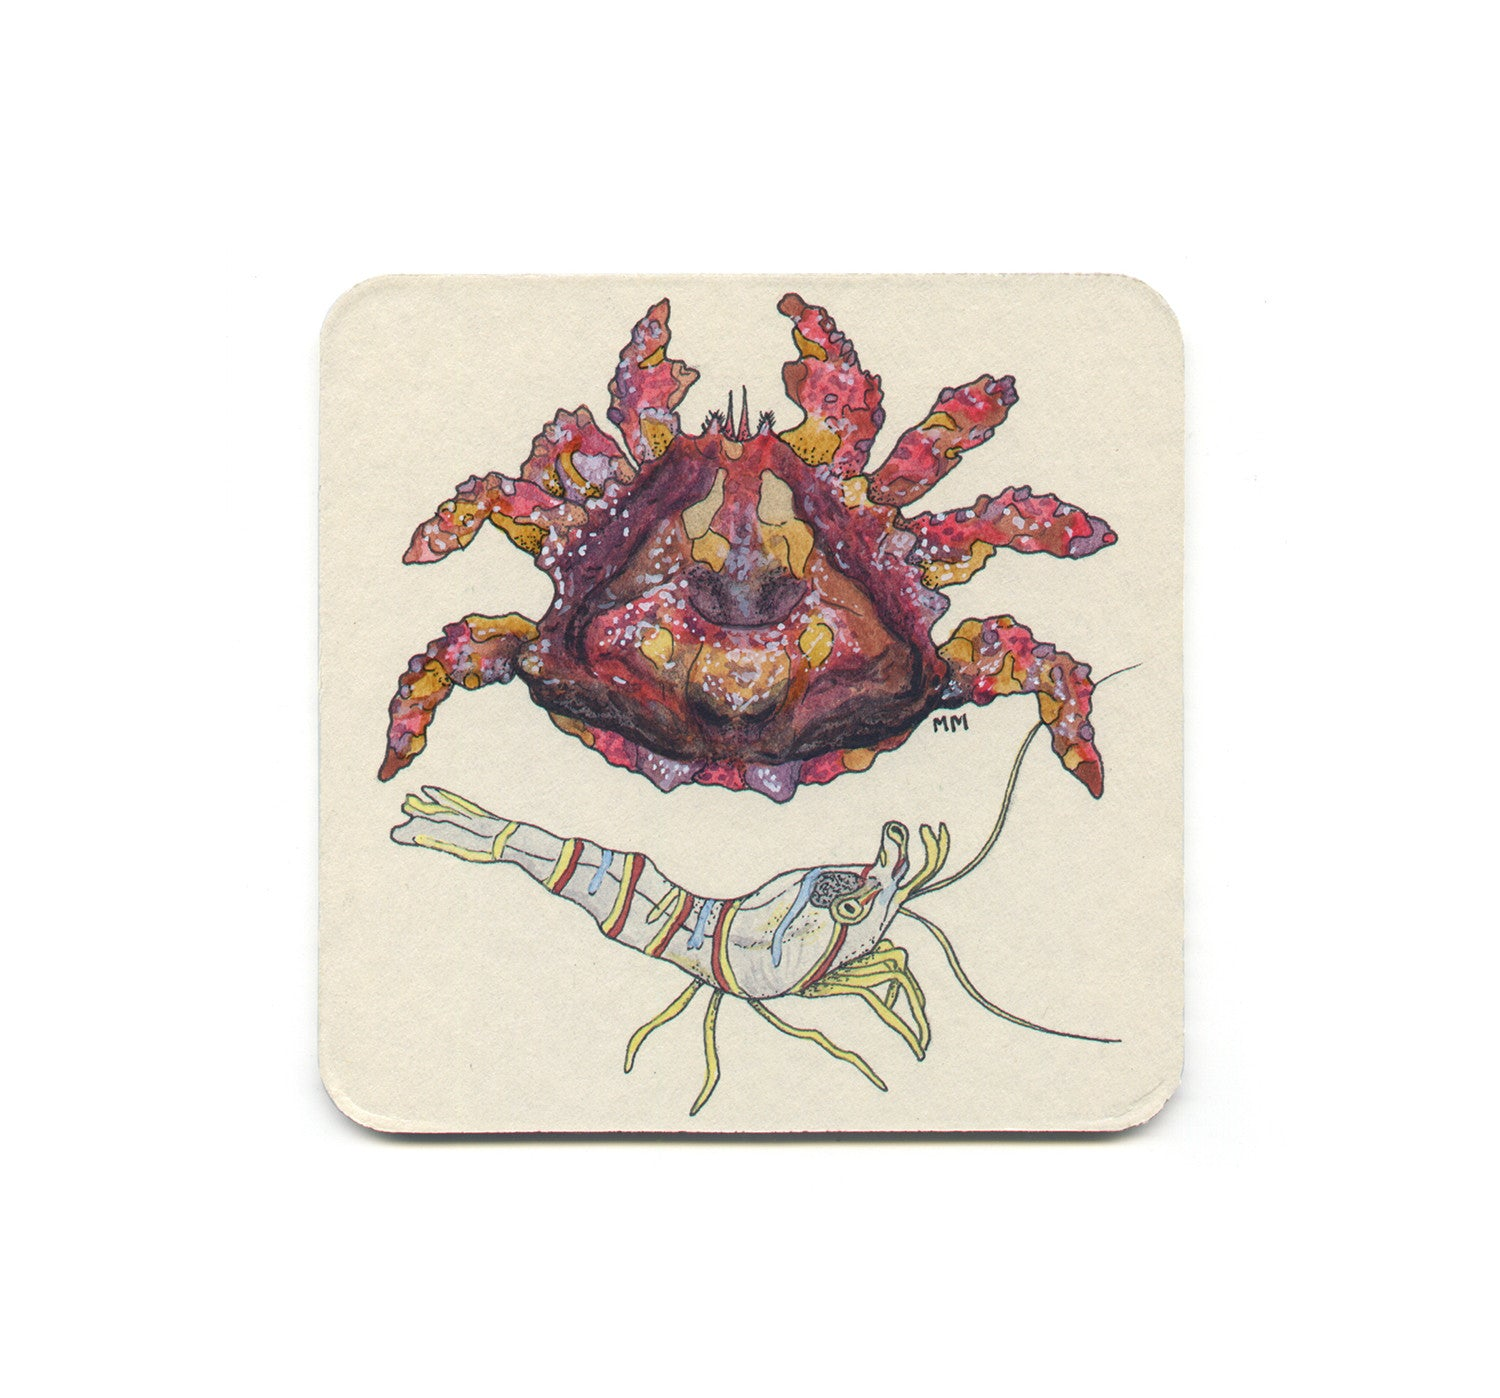 S1 Madison Erin Mayfield - Puget Sound King Crab & Candy Stripe Shrimp Coaster